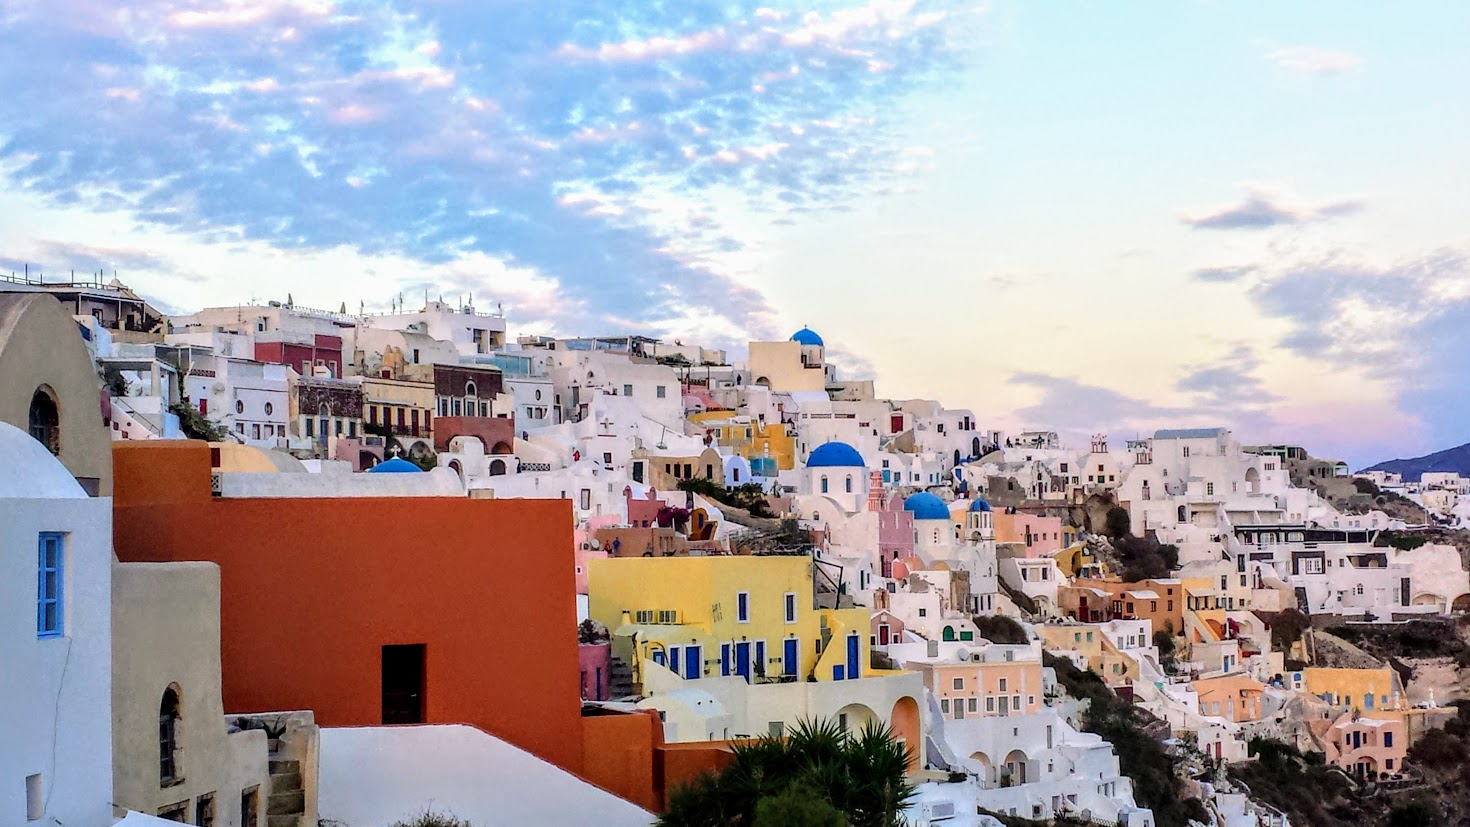 Things to avoid in Santorini - Don't take photos in people's homes